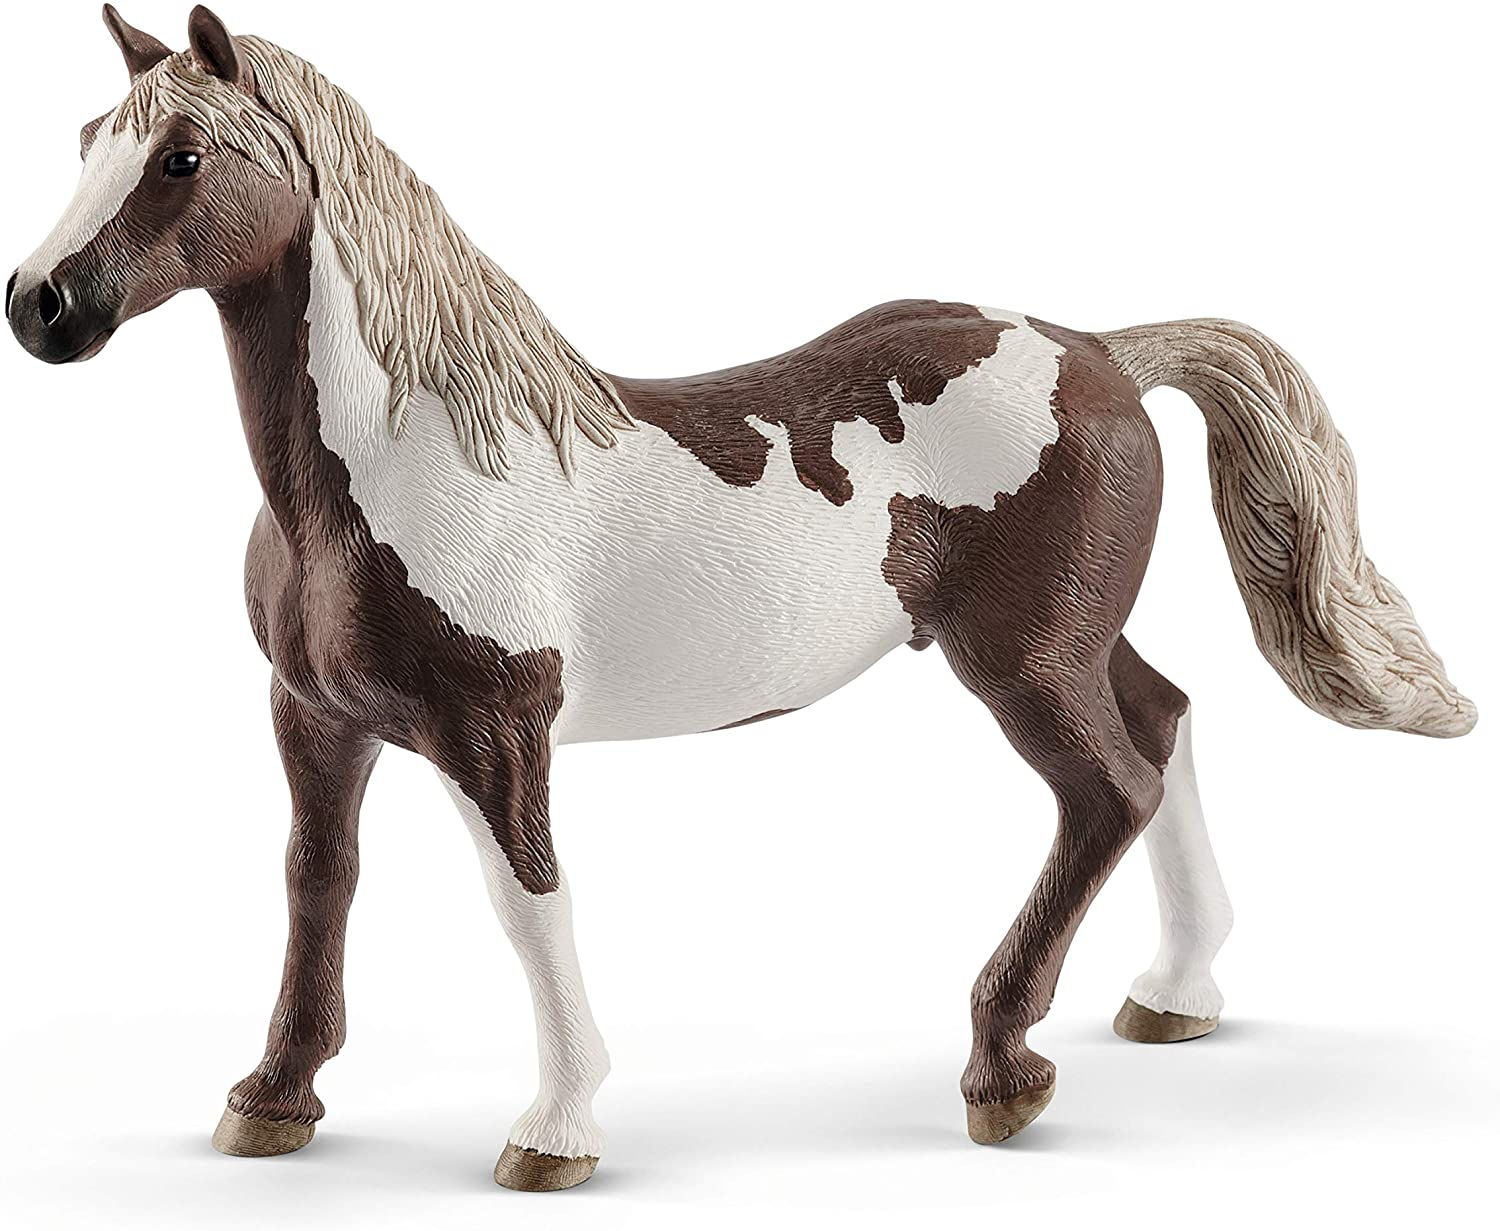 Amazon Com Schleich Horse Club Animal Figurine Horse Toys For Girls And Boys 5 12 Years Old Paint Horse Gelding Toys Games